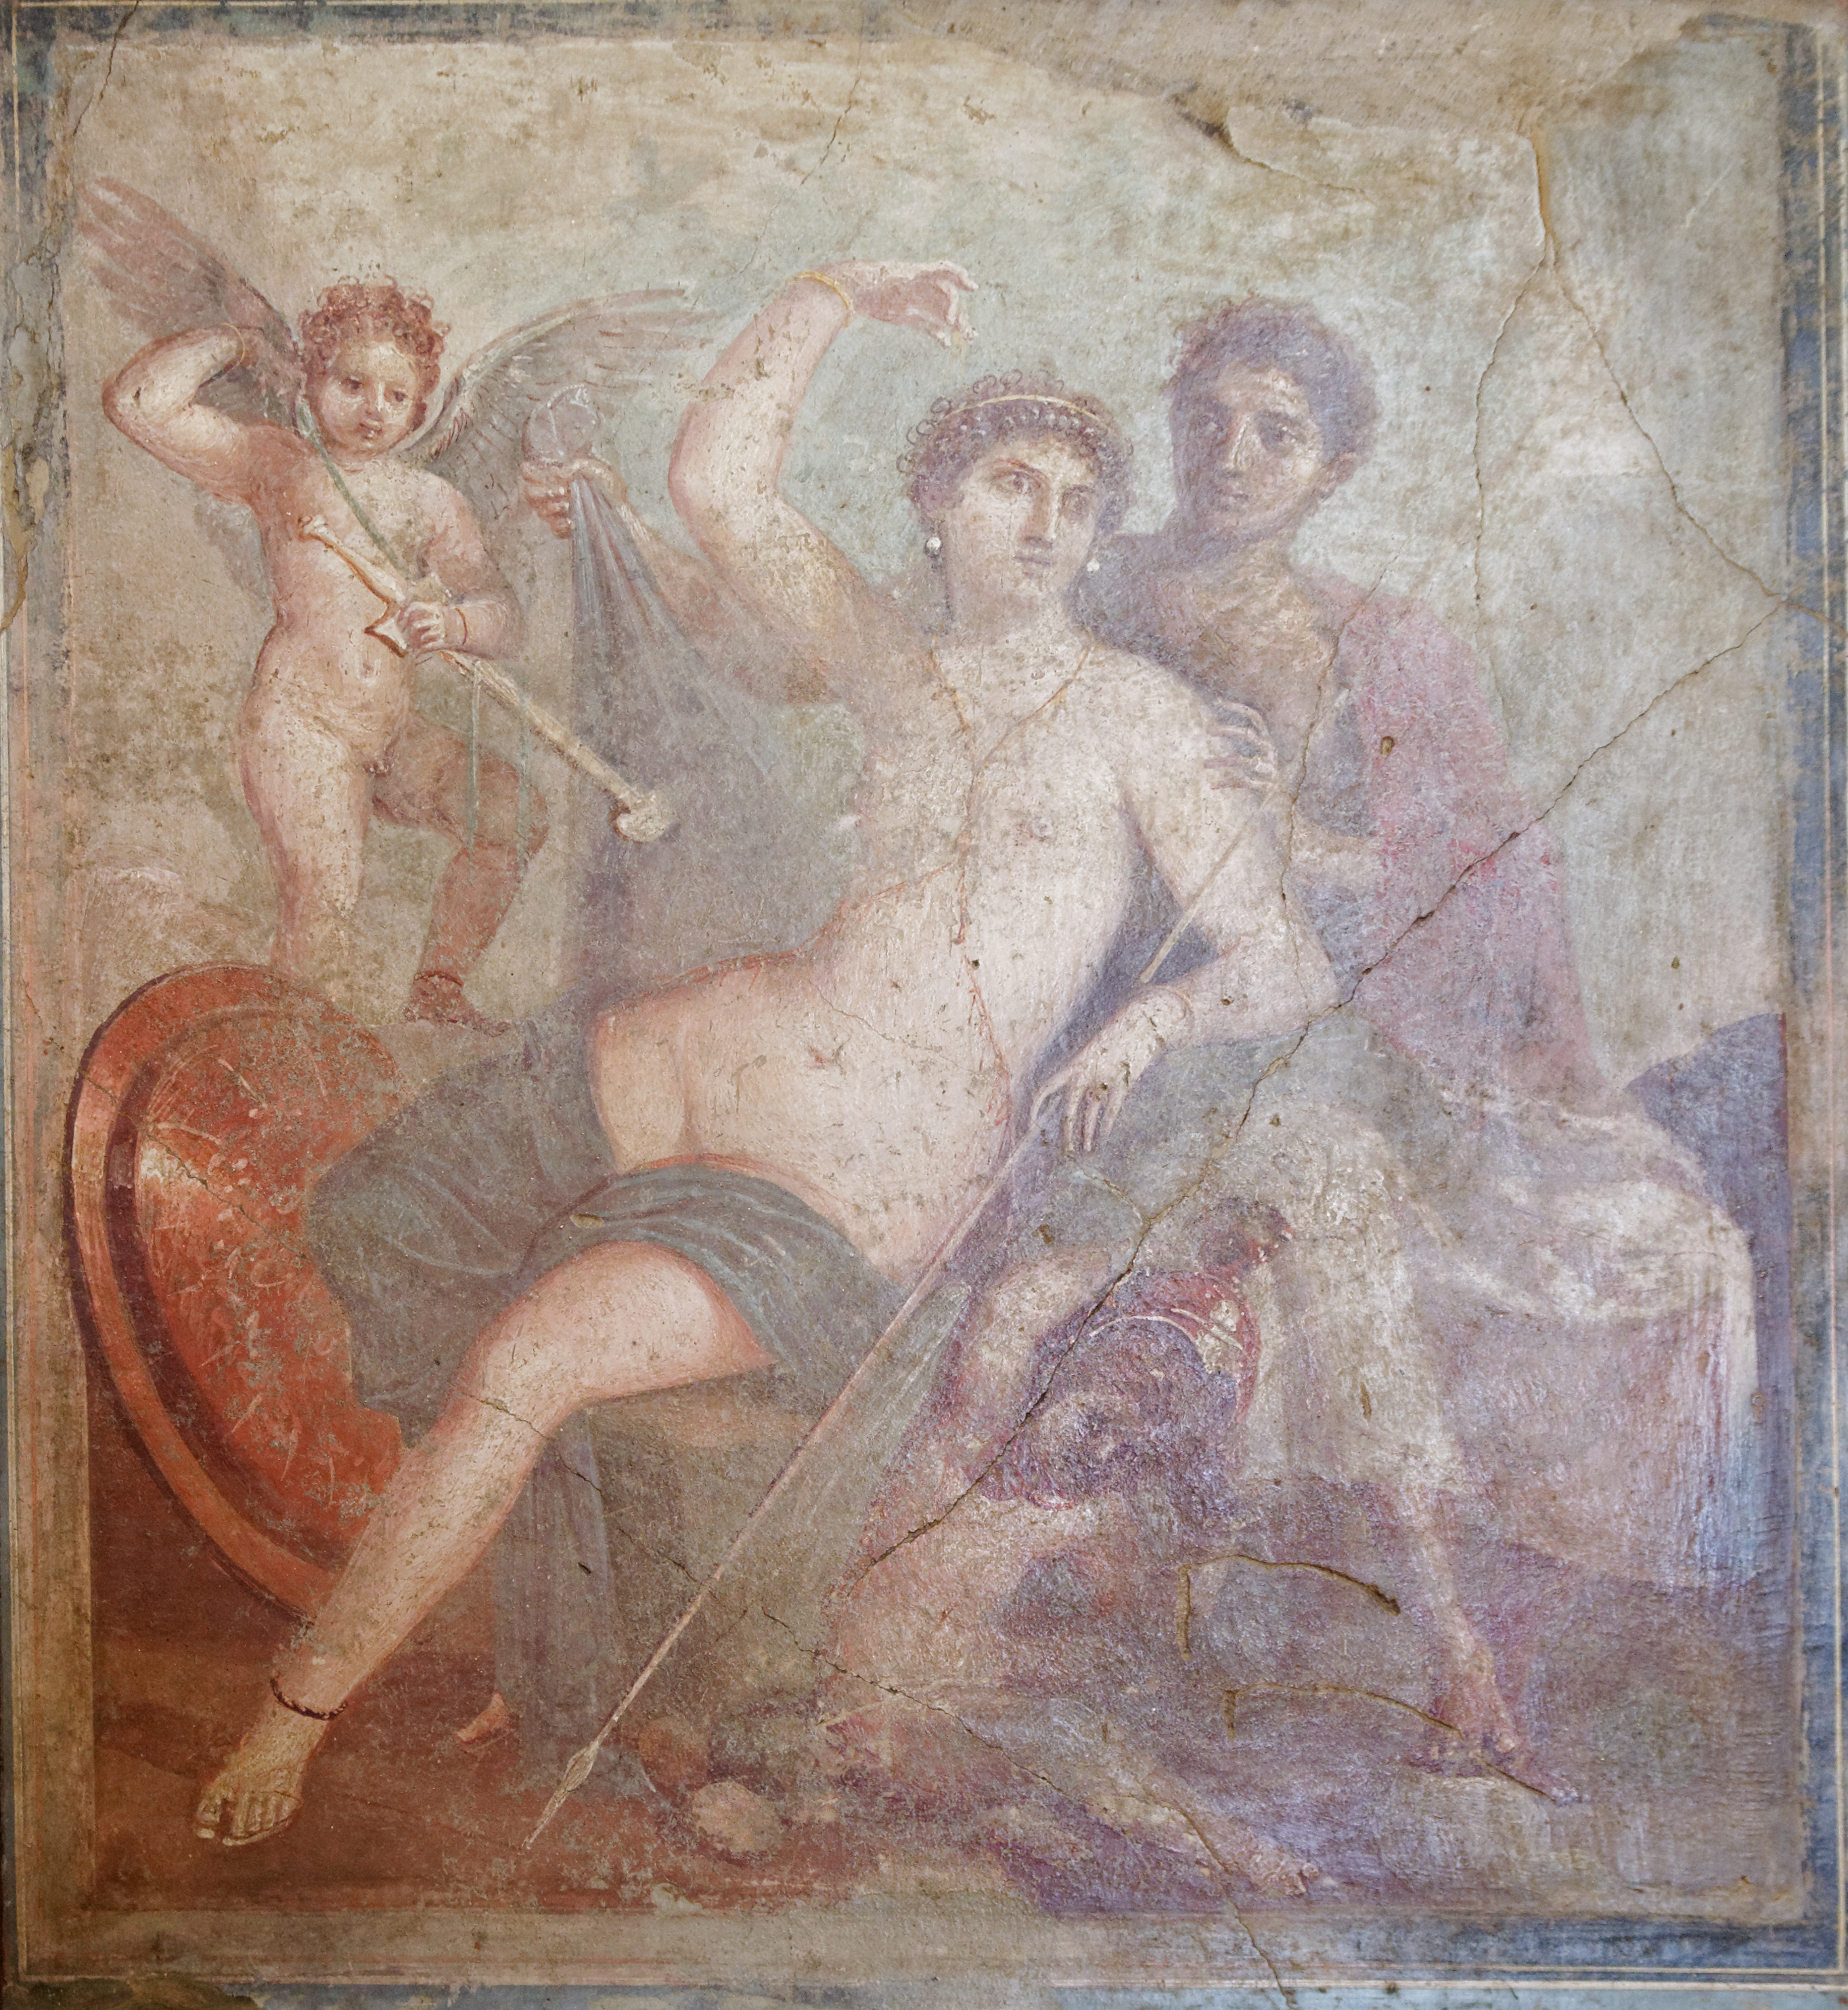 An image of Mars and Venus from Pompeii.